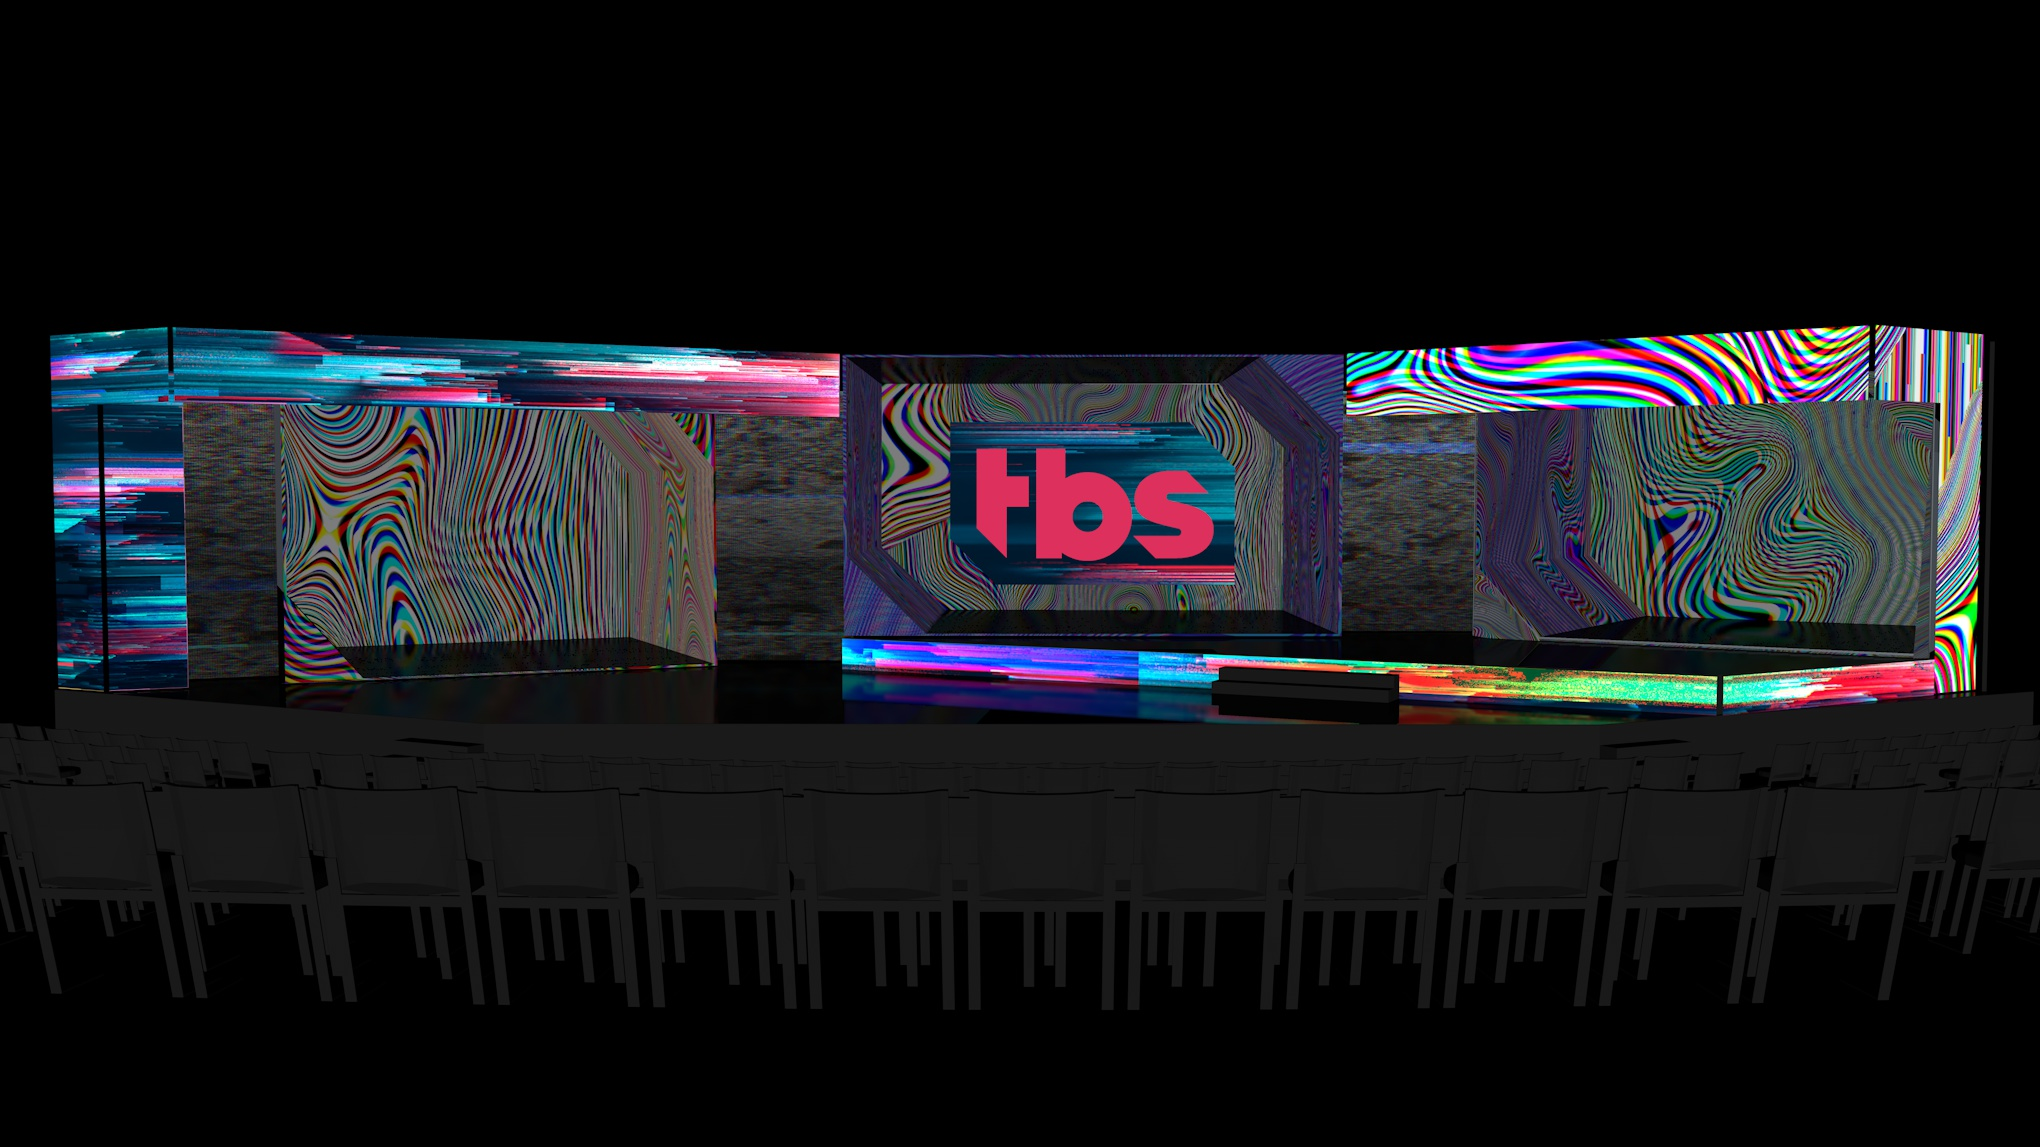 TBS_Noise_Image_Replace0001.jpg